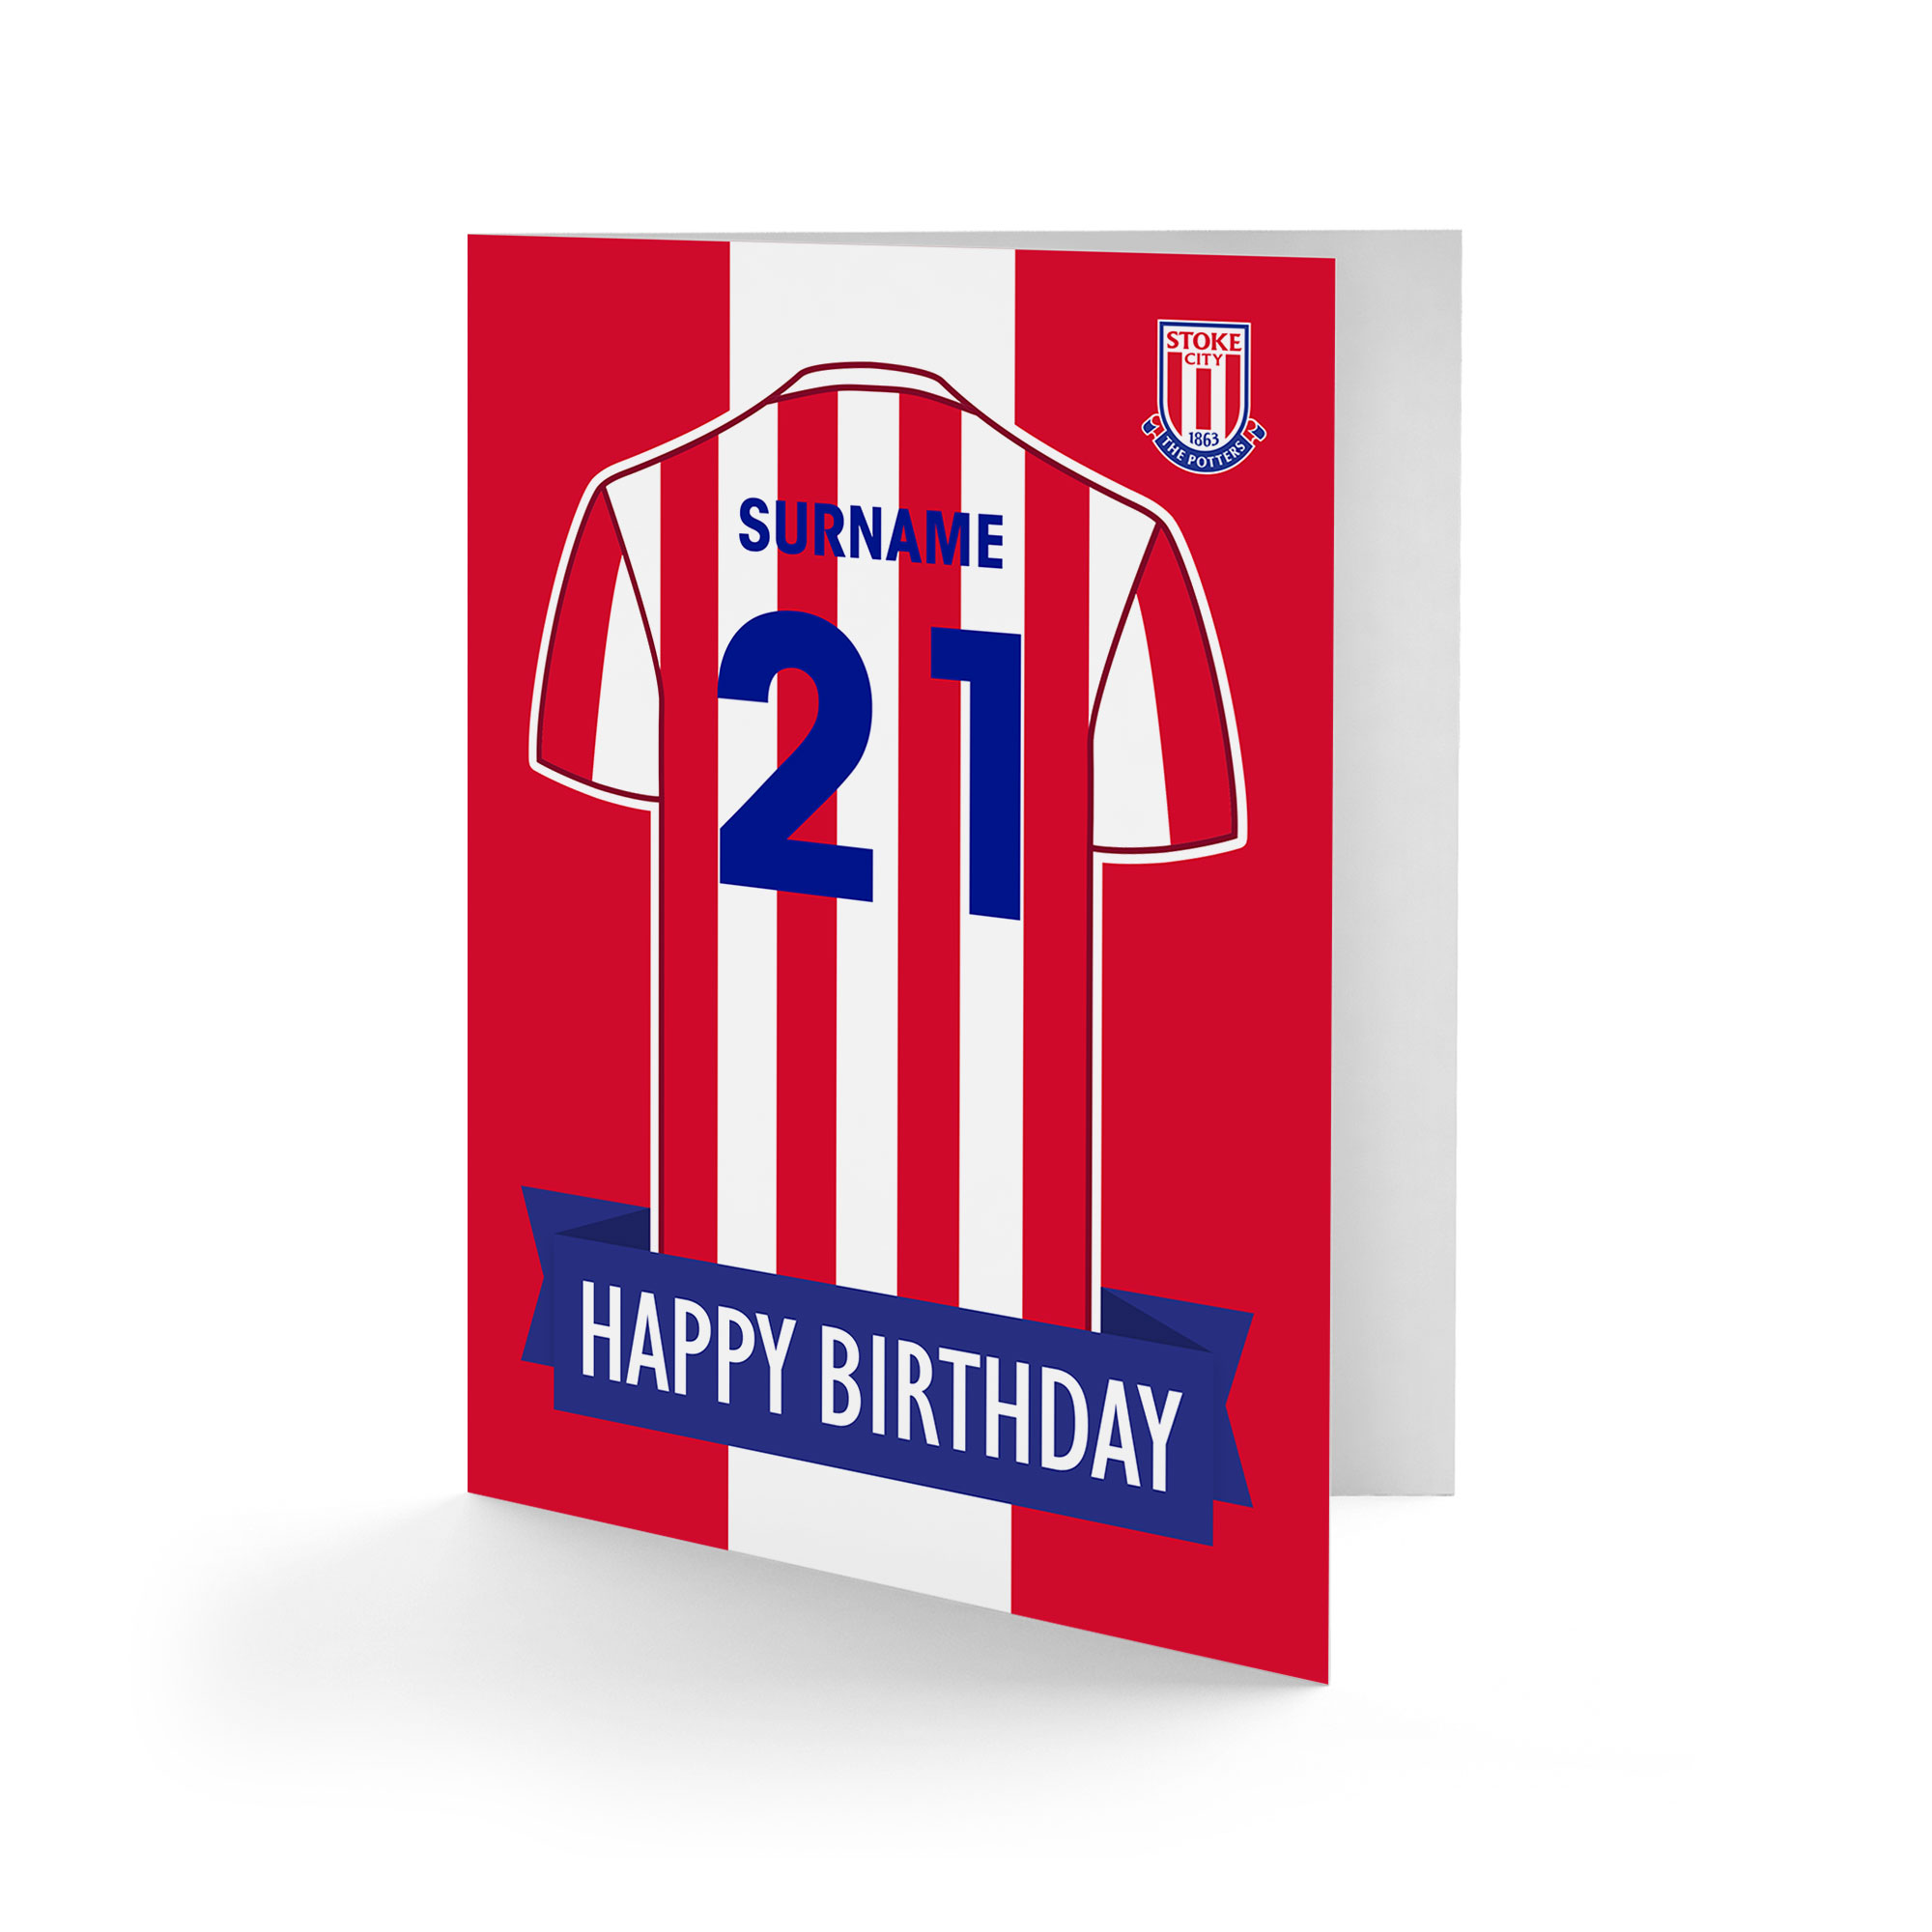 Stoke City FC Shirt Birthday Card